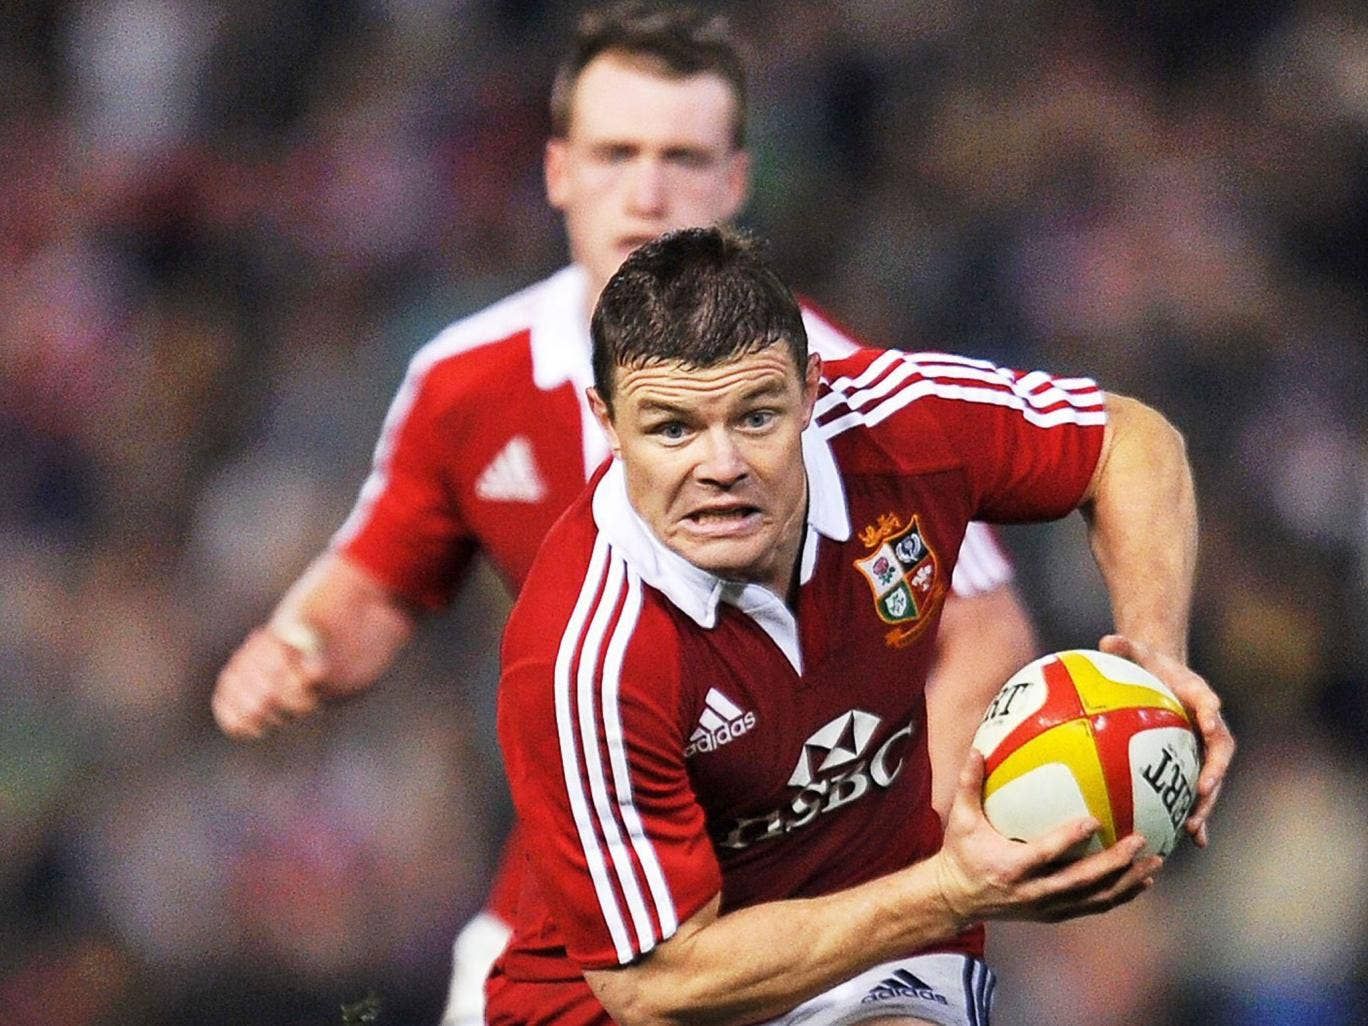 O'Driscoll has been sashaying with the same deft hands and peerless anticipation and vision